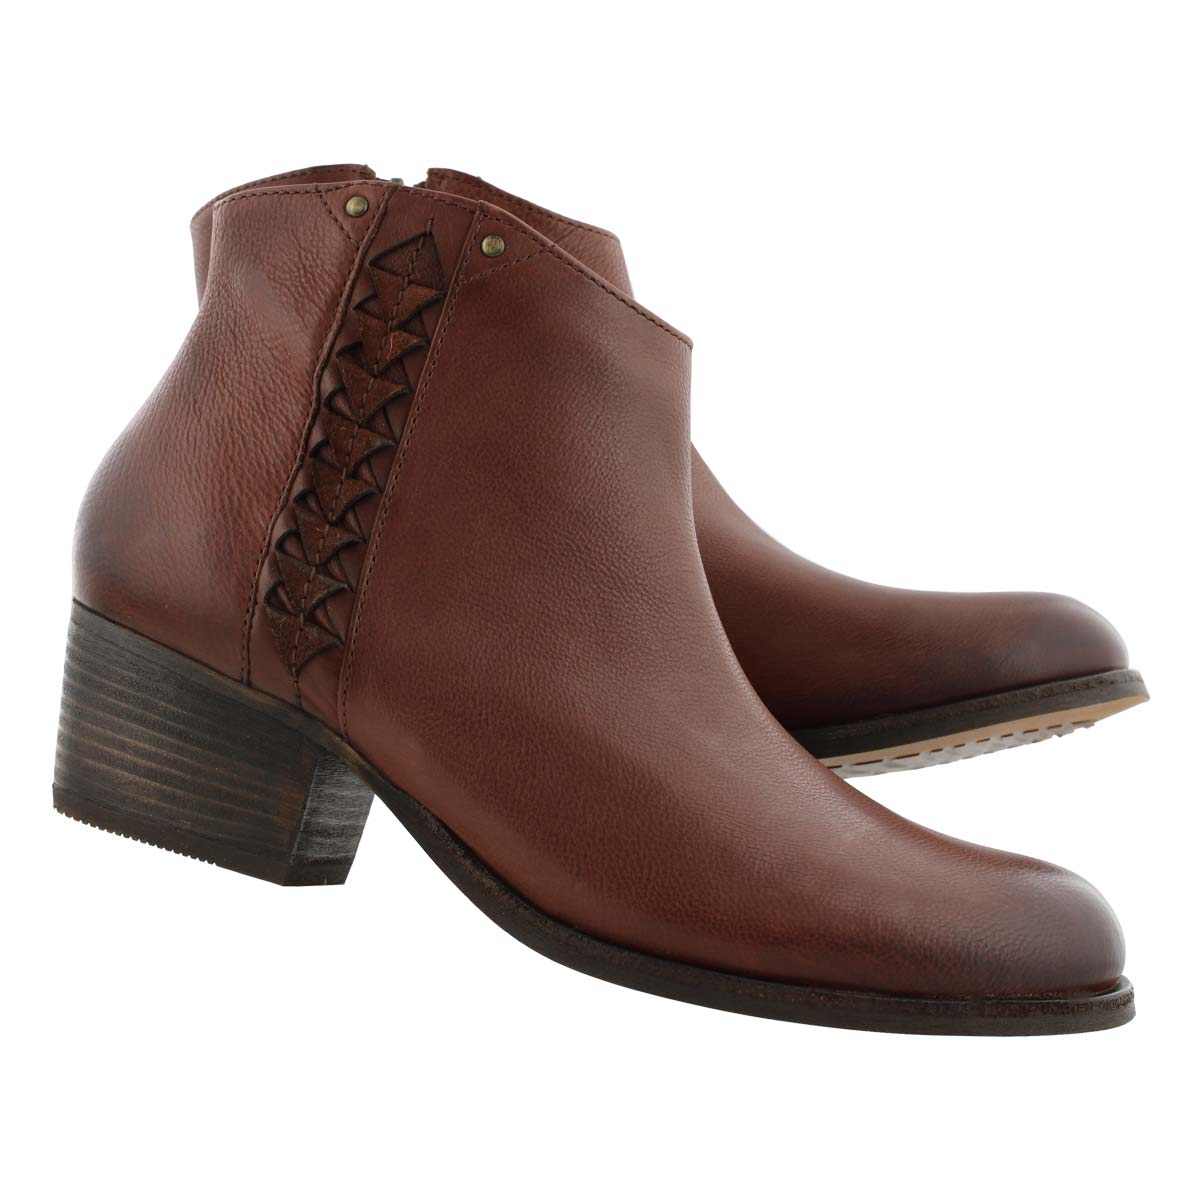 Lds Maypearl Fawn mgny slipon ankle boot